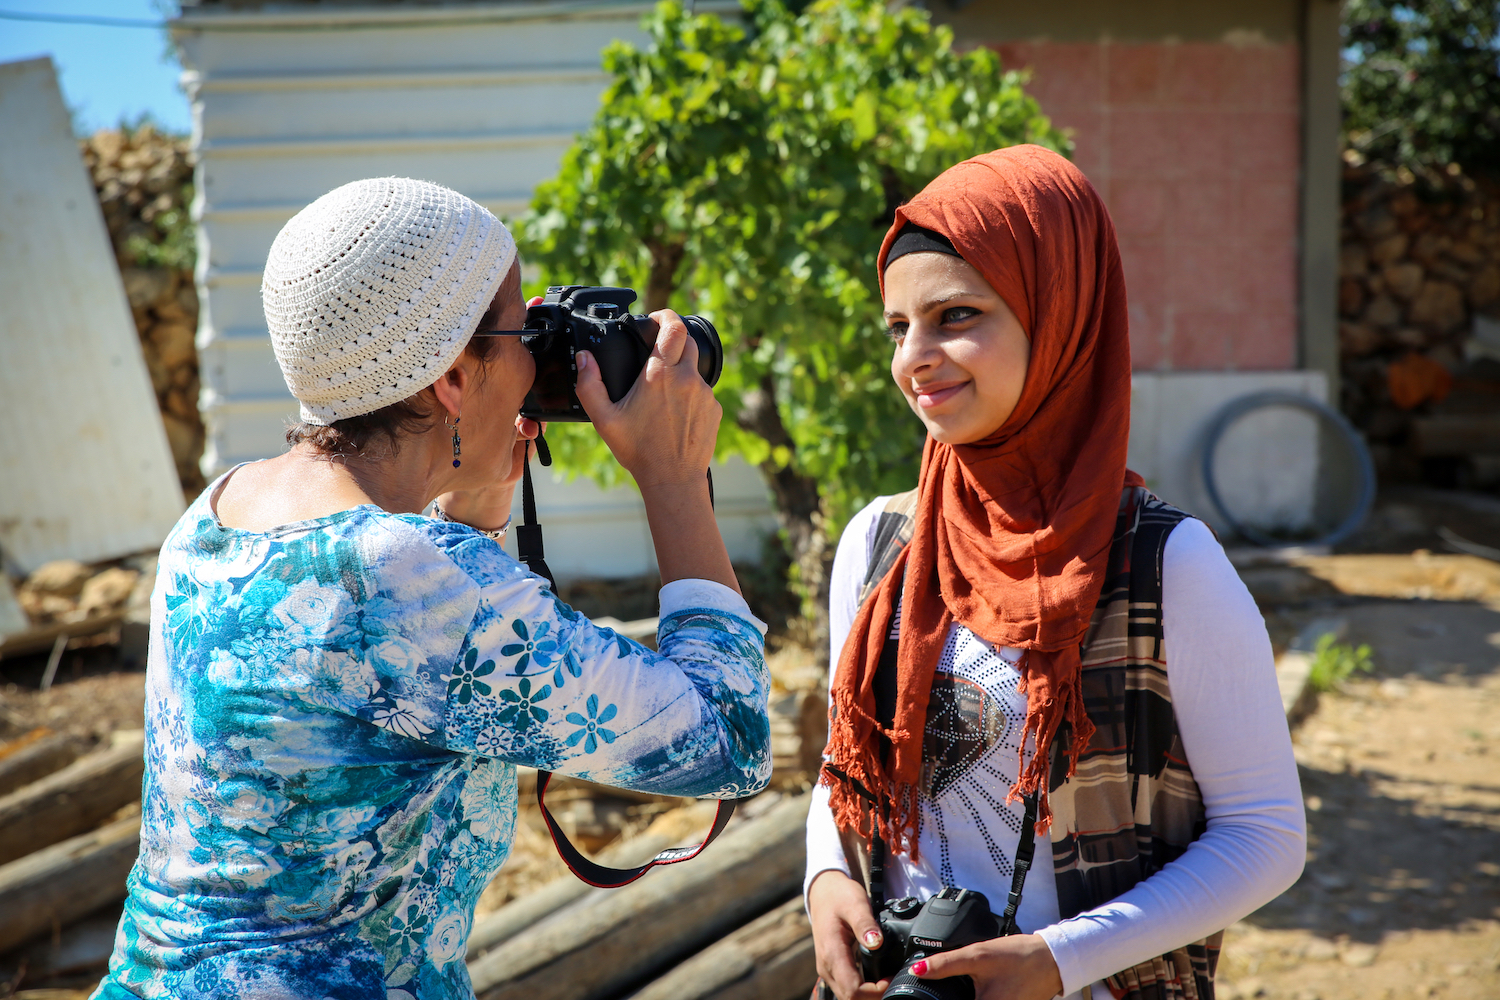 saskia-keeley-photography-humanitarian-photojournalism-documentarian-events-ucla-dortort-center-beyond-sides-towards-reconciliation-non-violence-workshops-israel-palestine.jpg